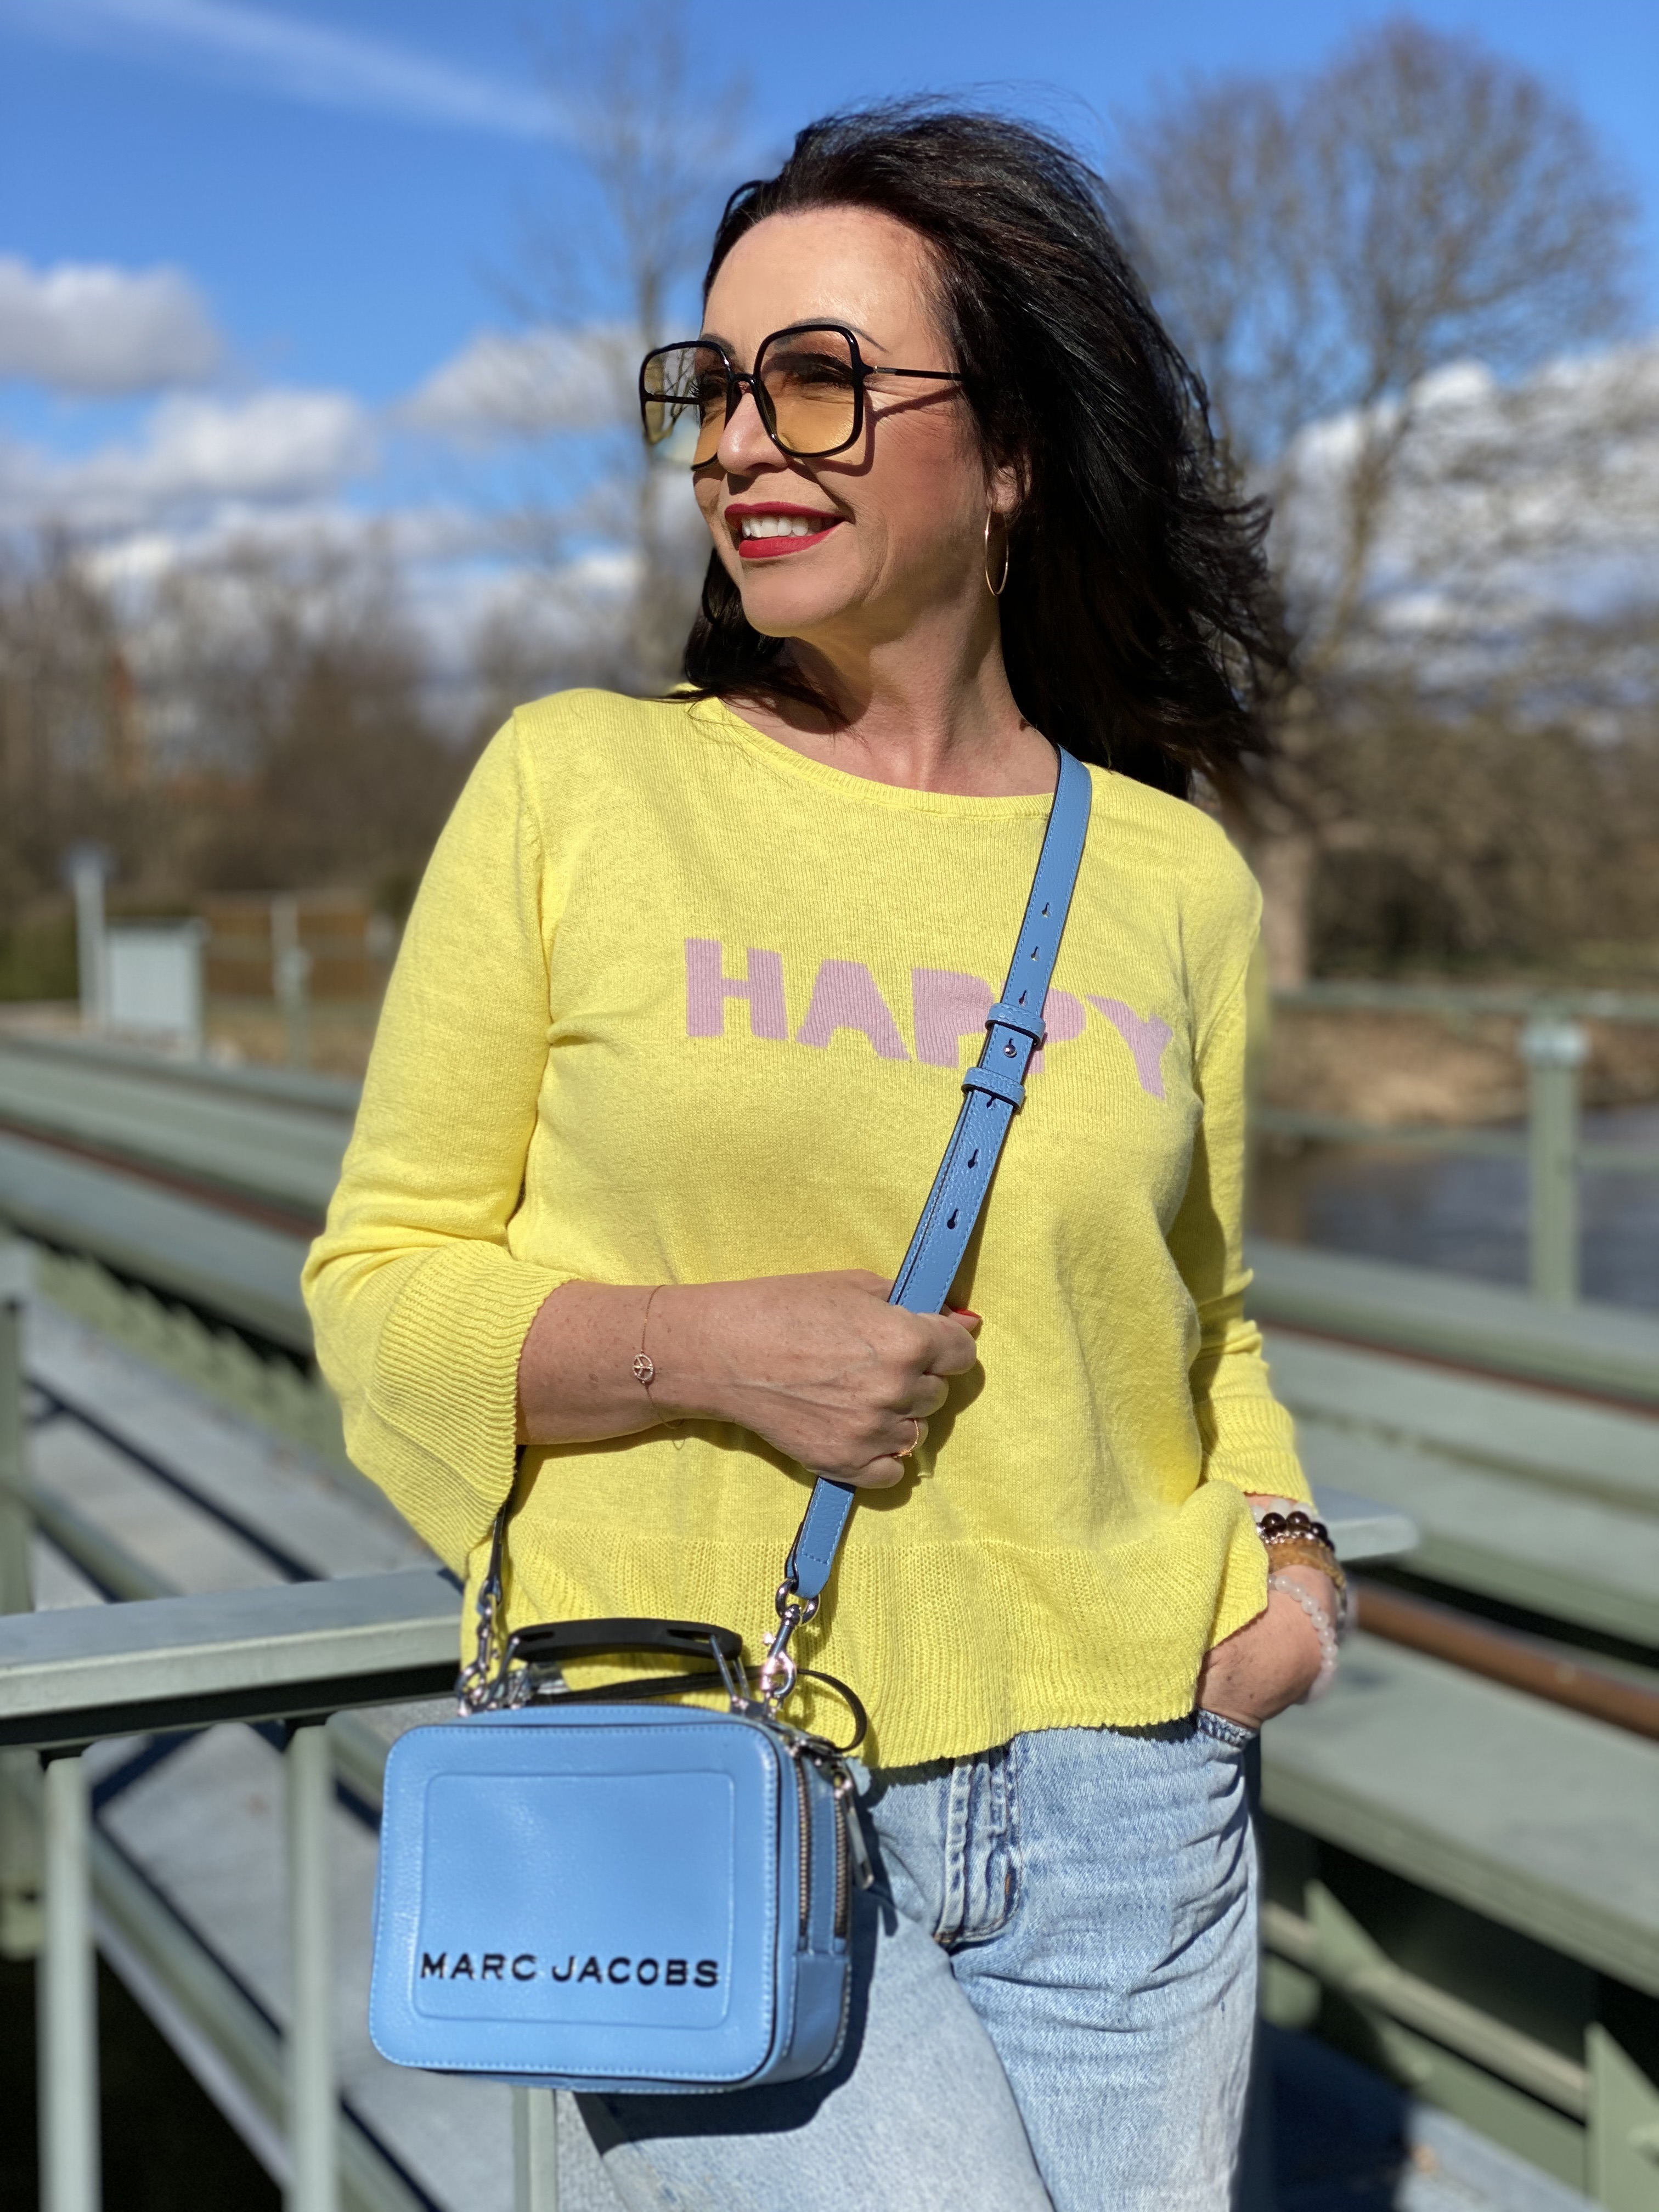 Spring fashion 2020, Grace fashion sweater, Marc Jacobs bag, Dior Stellaire shades, designer wear, Mango Jeans, style for ladies, ageless fashion, cochastyle, streetfashion, spring trends, 2020, yoox shoes, mystyle, jewelryblogger, eyewearblogger, streetwear